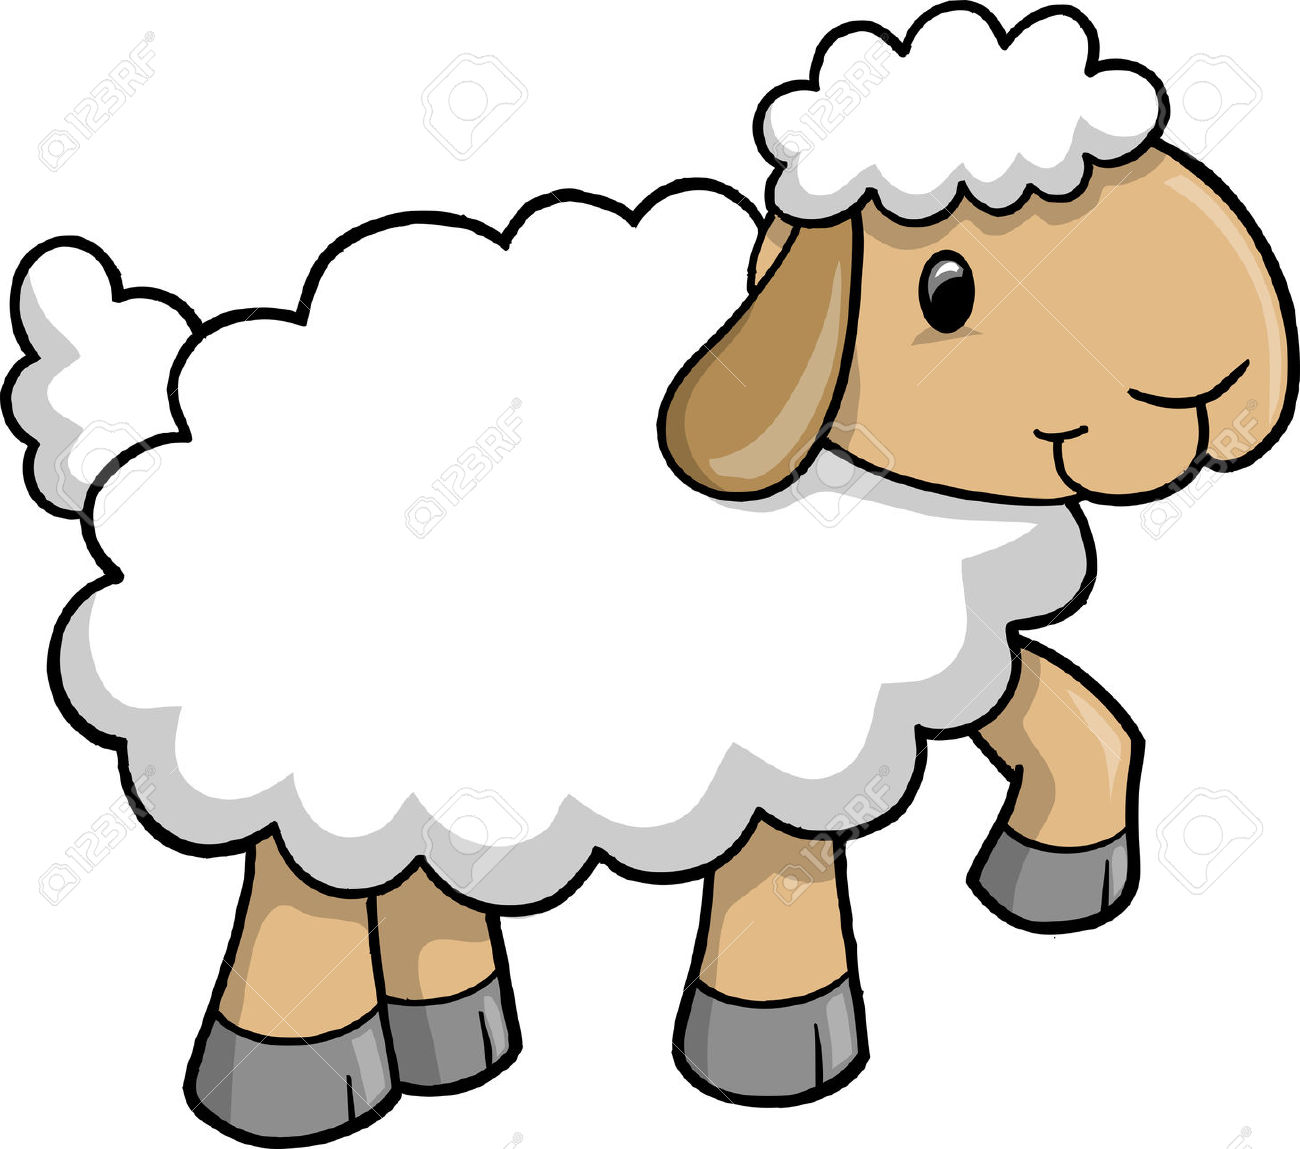 Sheep Clipart Cartoon